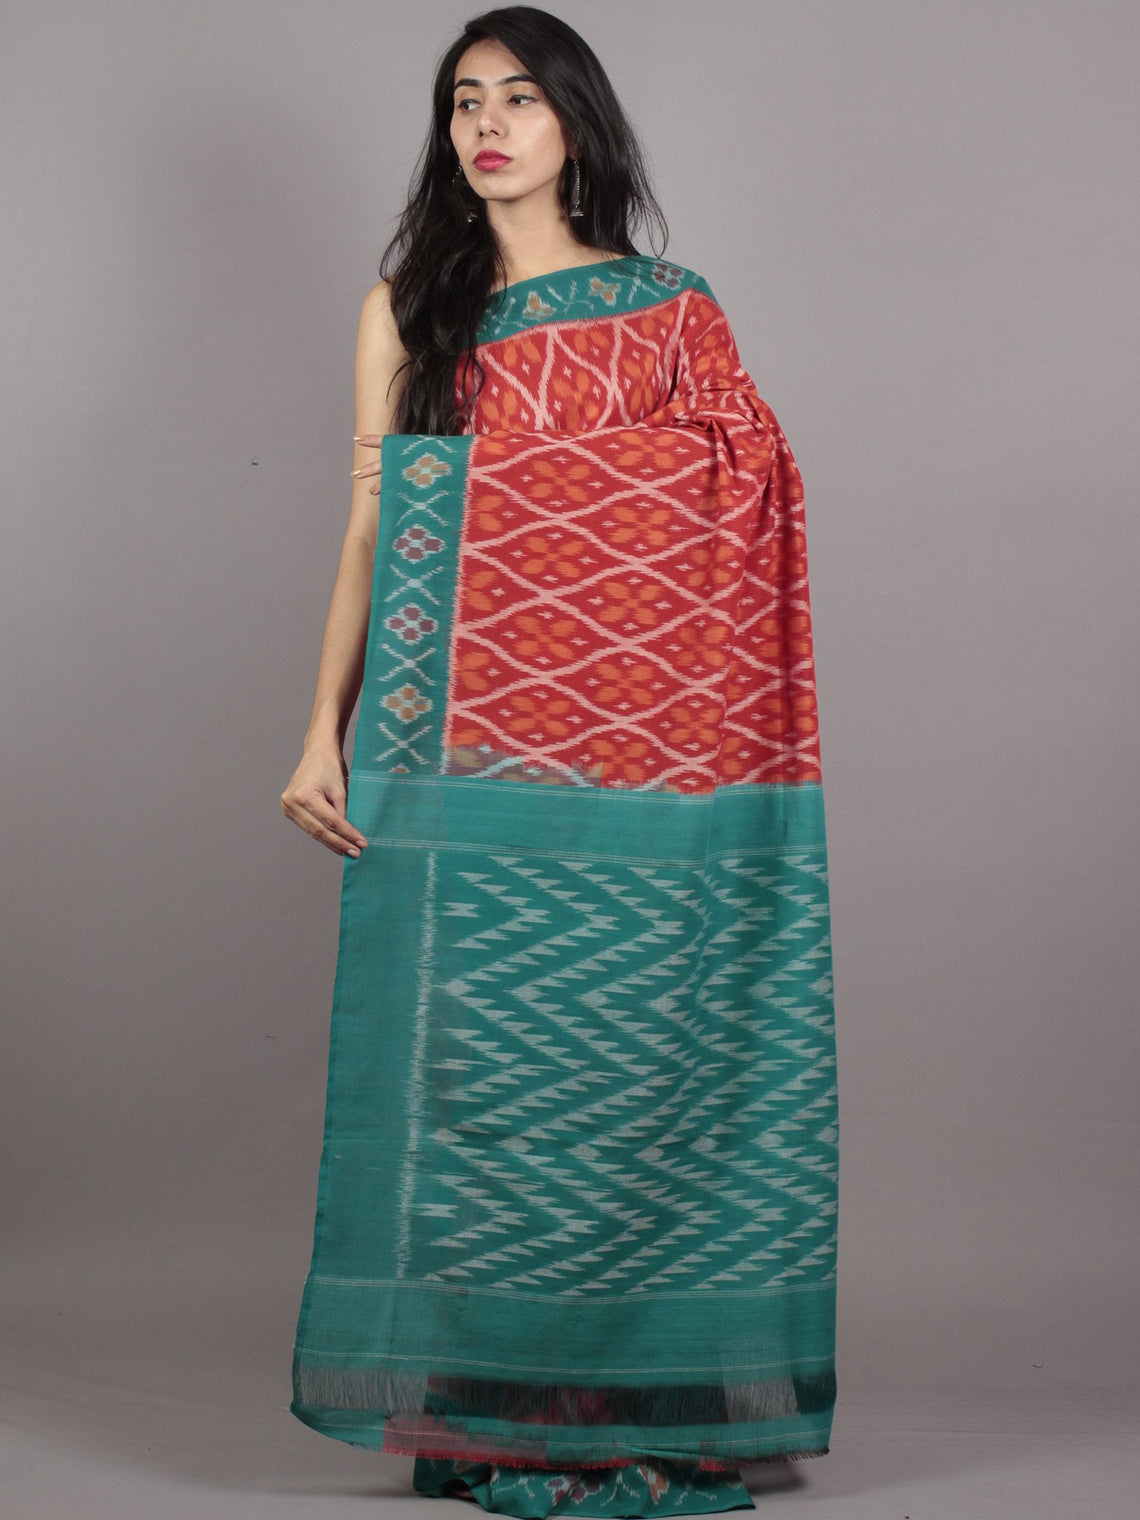 Maroon Green Orange Grey Ikat Handwoven Pochampally Mercerized Cotton Saree - S031701626